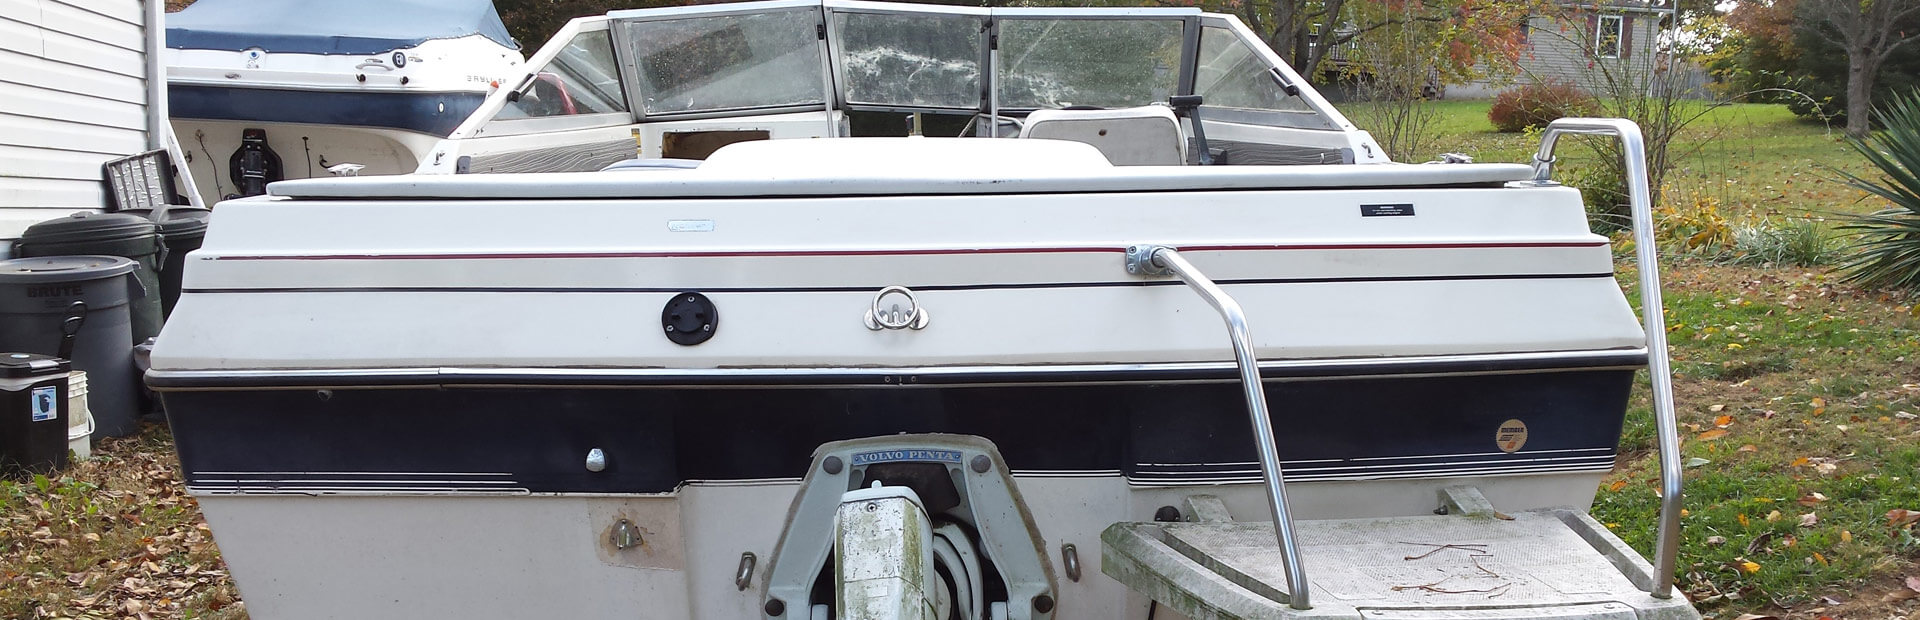 Donate Boat, Yacht or Jet Ski in South Carolina - Sailboat Donations Too!